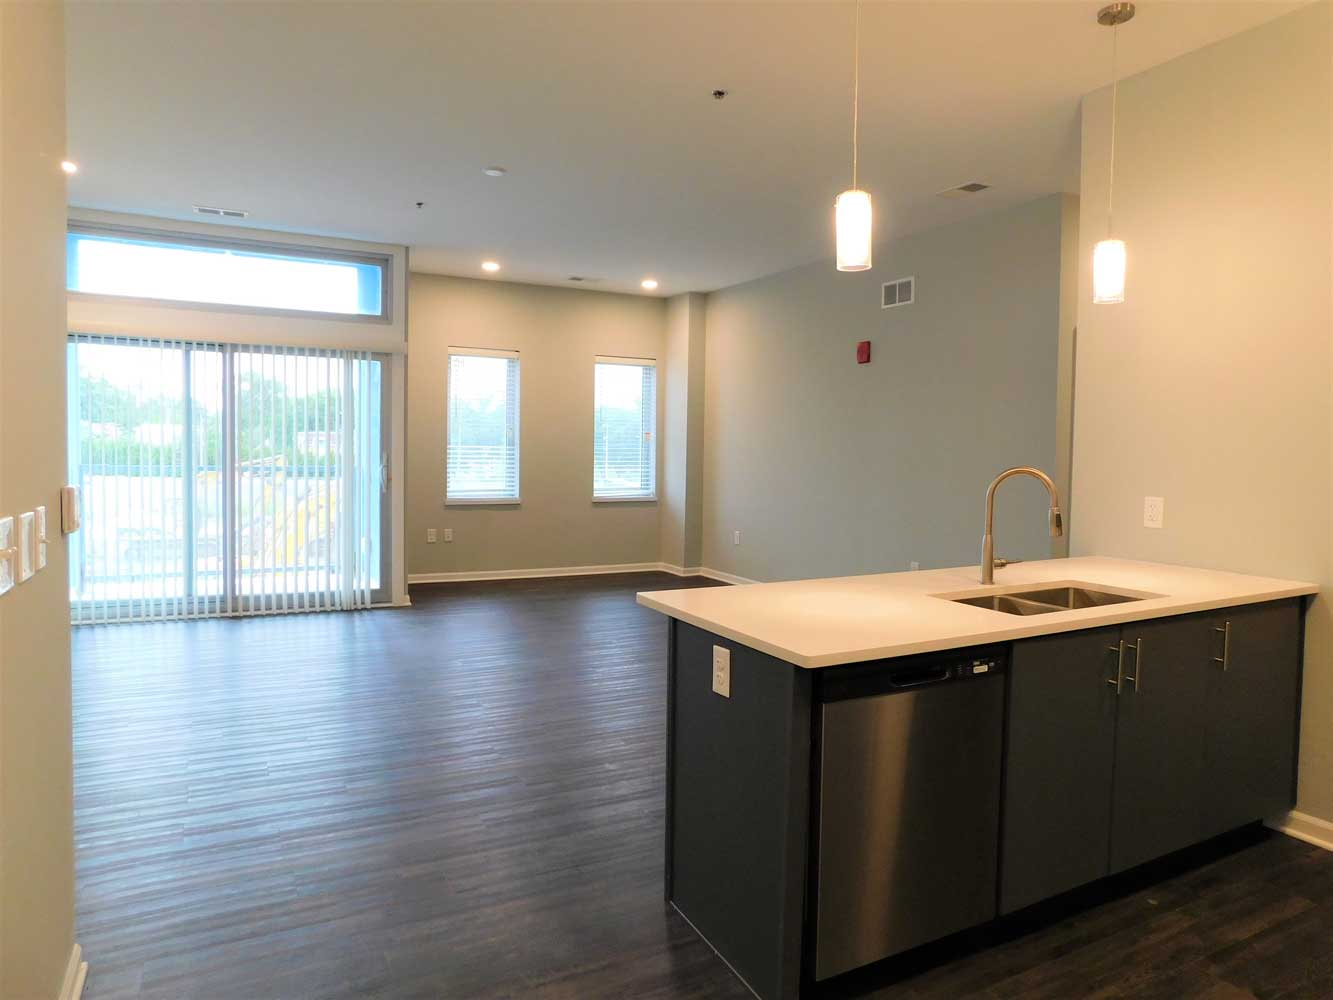 Grilling Stations Available at Midtown Plaza Apartments in Kansas City, MO